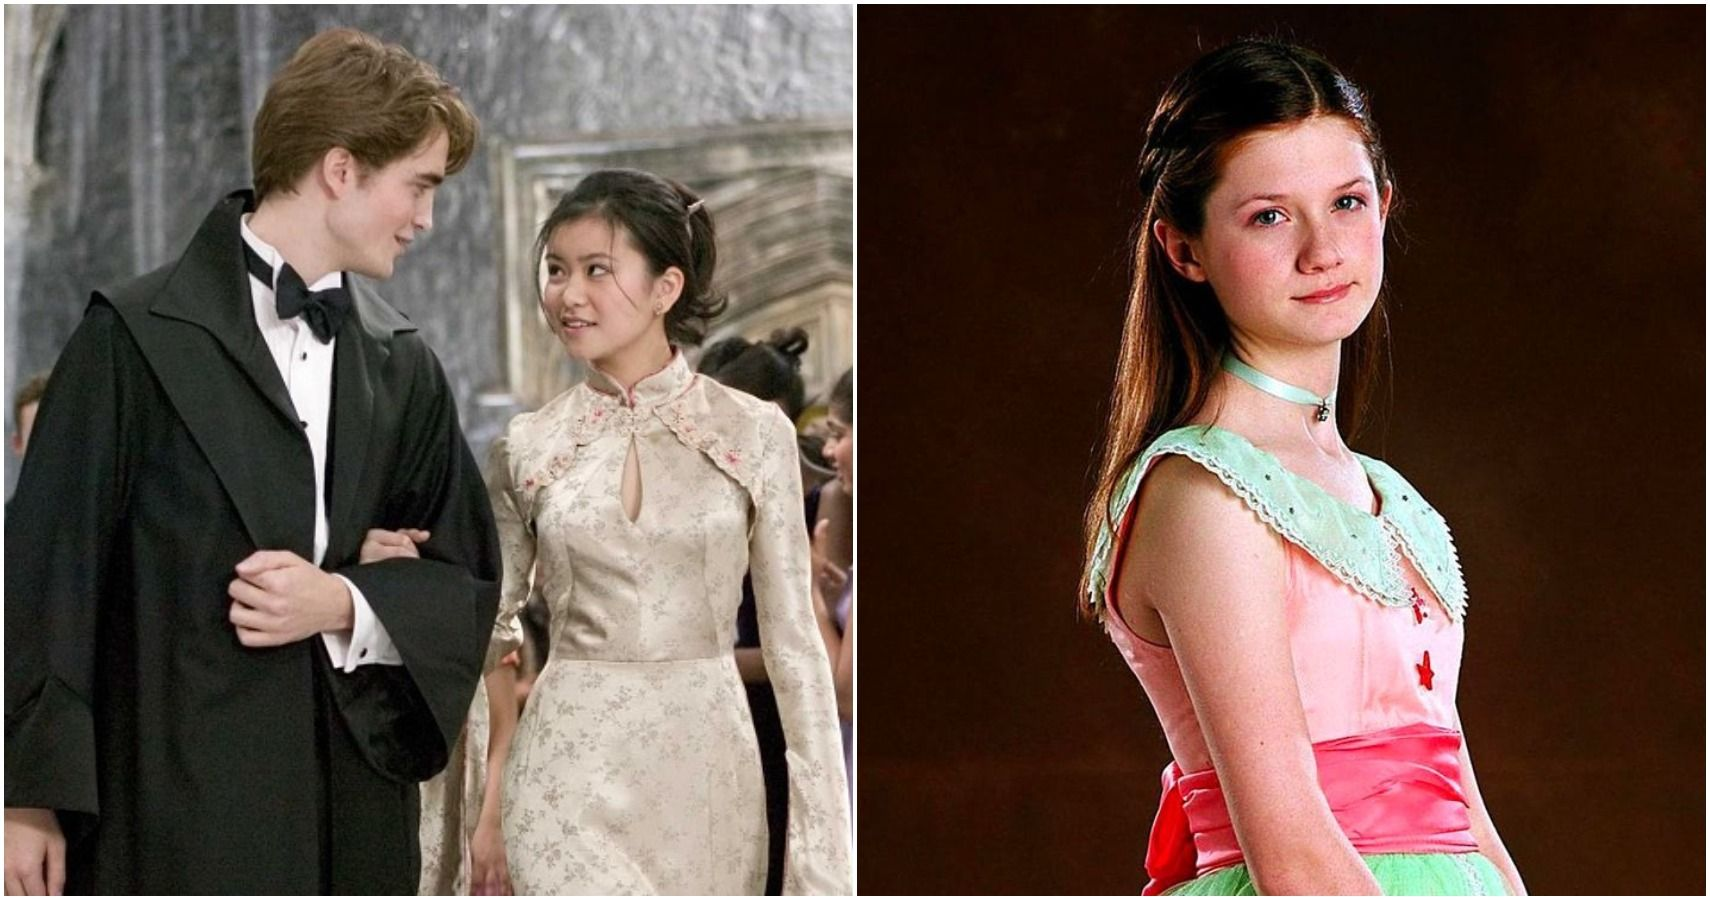 Harry Potter Yule Ball Outfits Ranked Screenrant